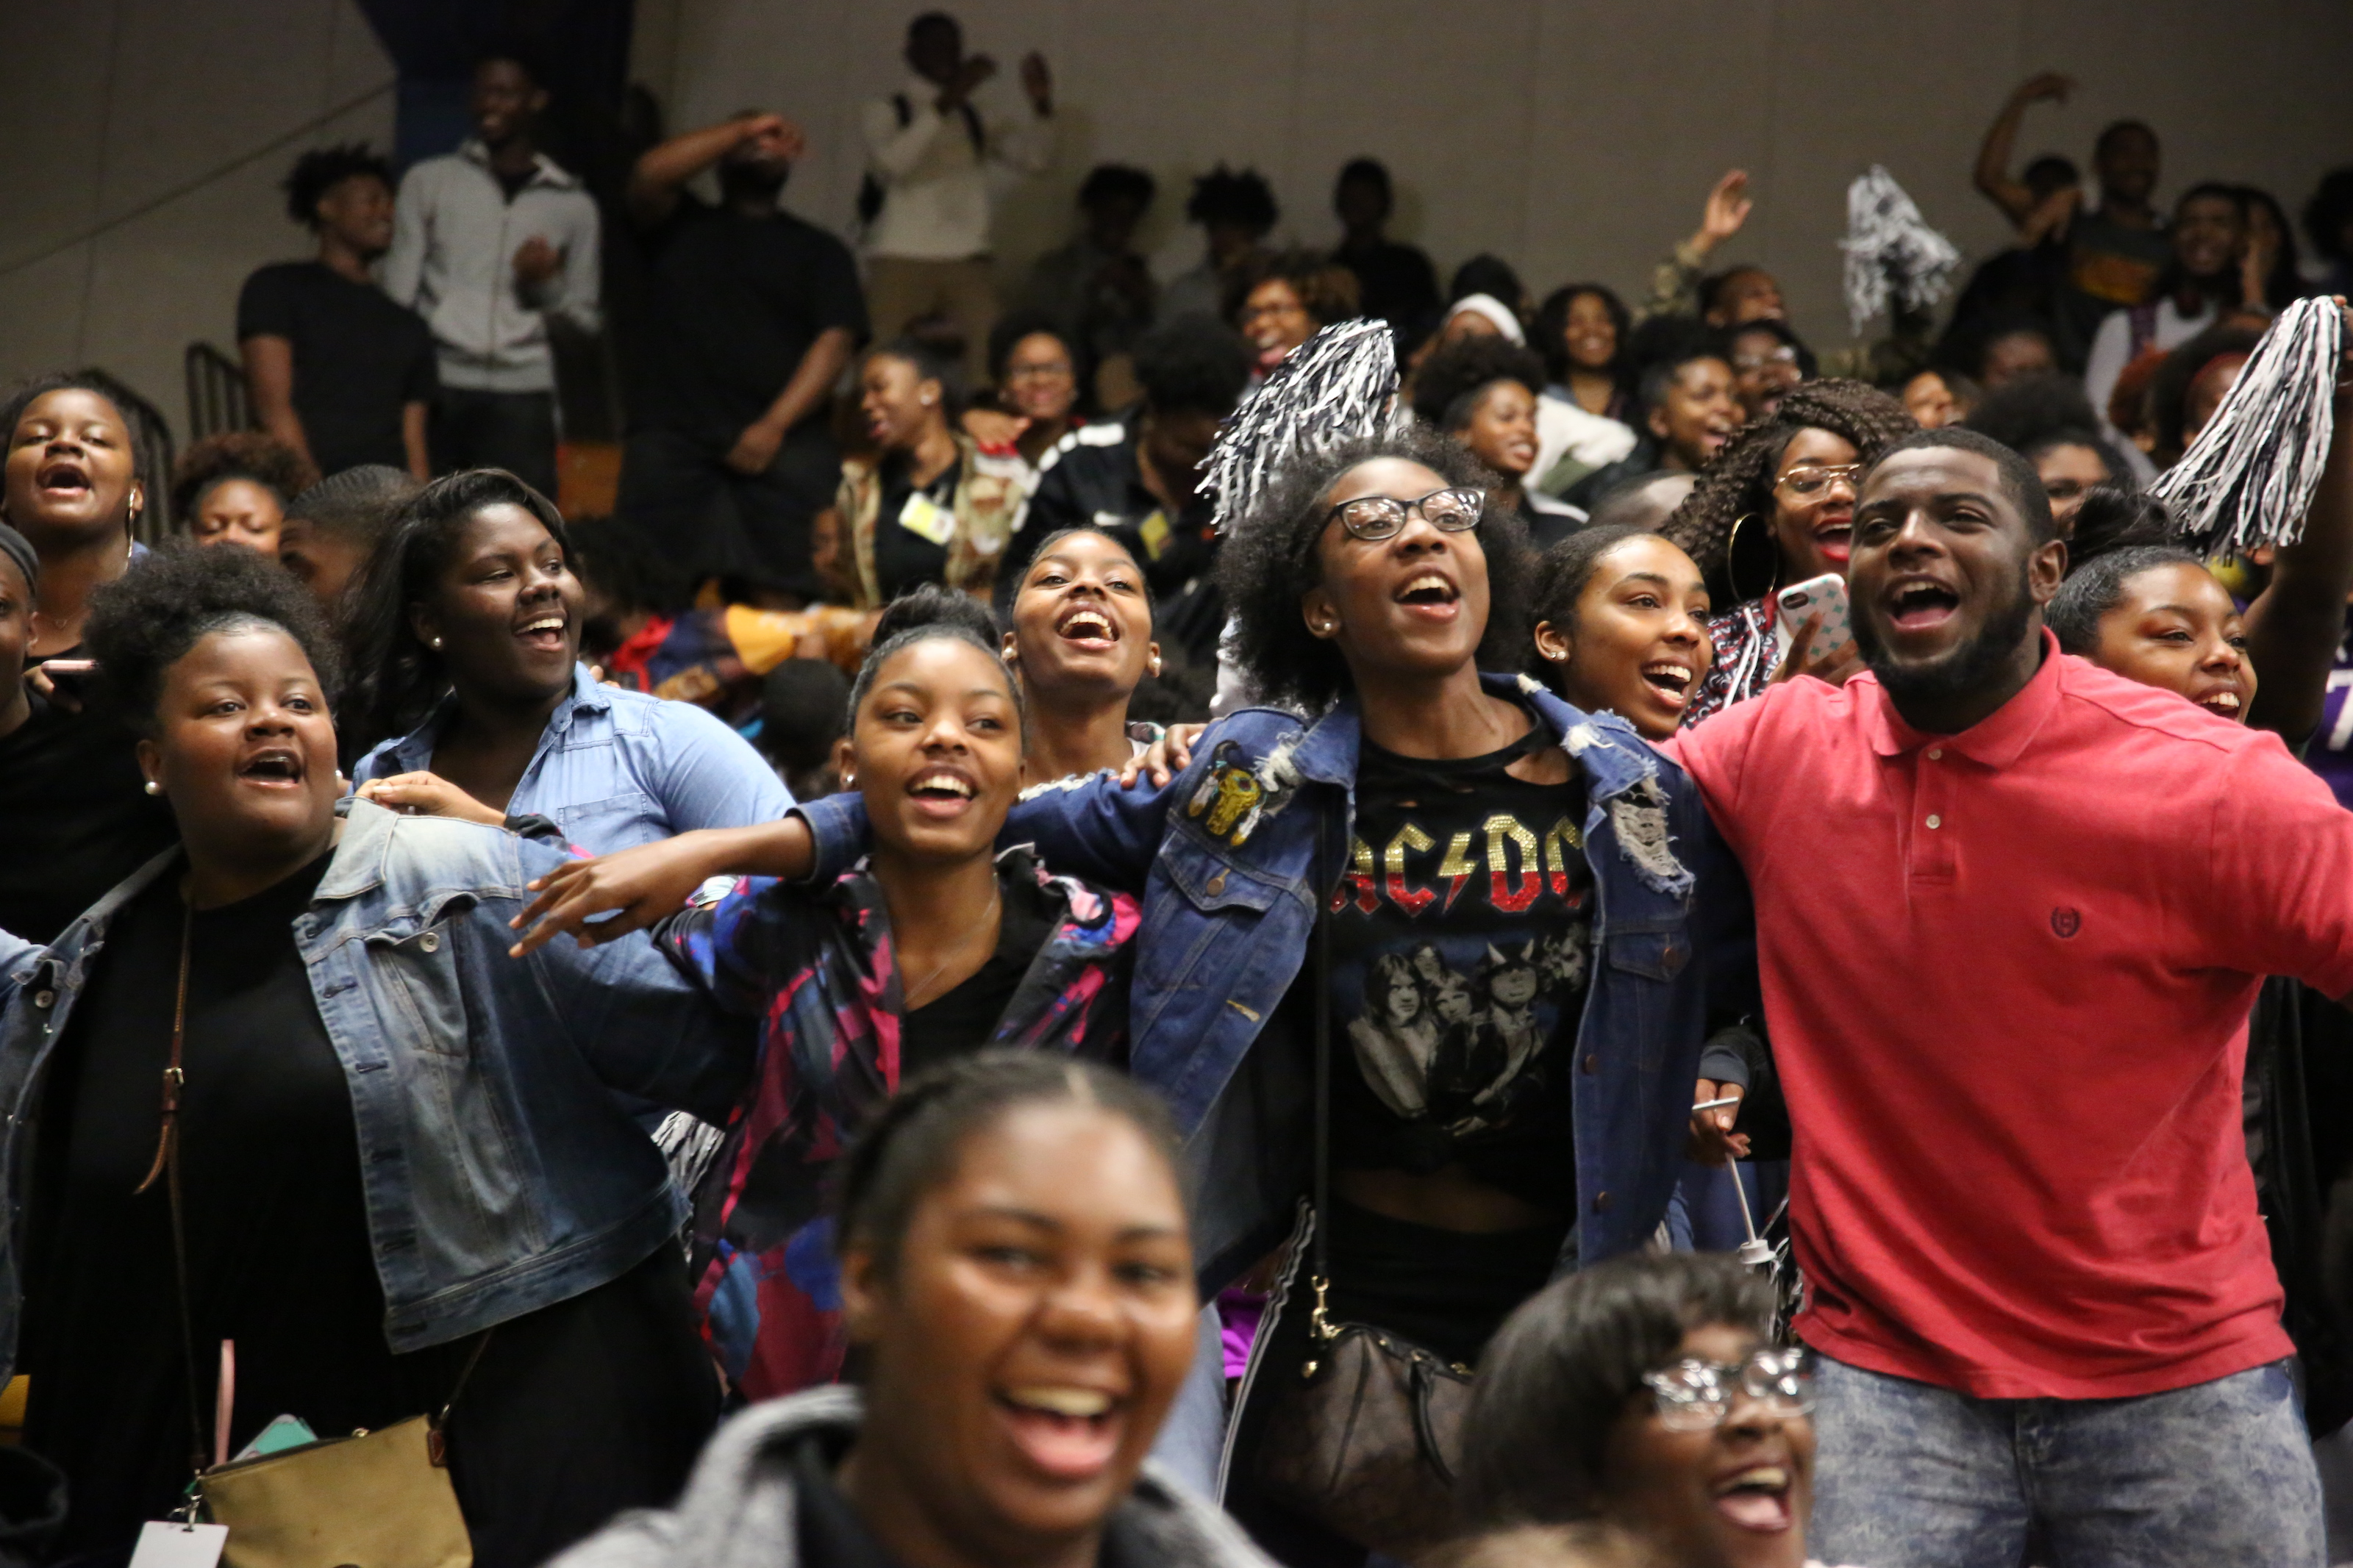 Greenville students are hyped by the Sonic Boom and other JSU performances during a recent Presidential Recruitment Tour in the Delta. About 1,000 students from more than a dozen schools assembled inside the Washington County Convention Center. (Photo by Spencer L. McClenty/JSU)